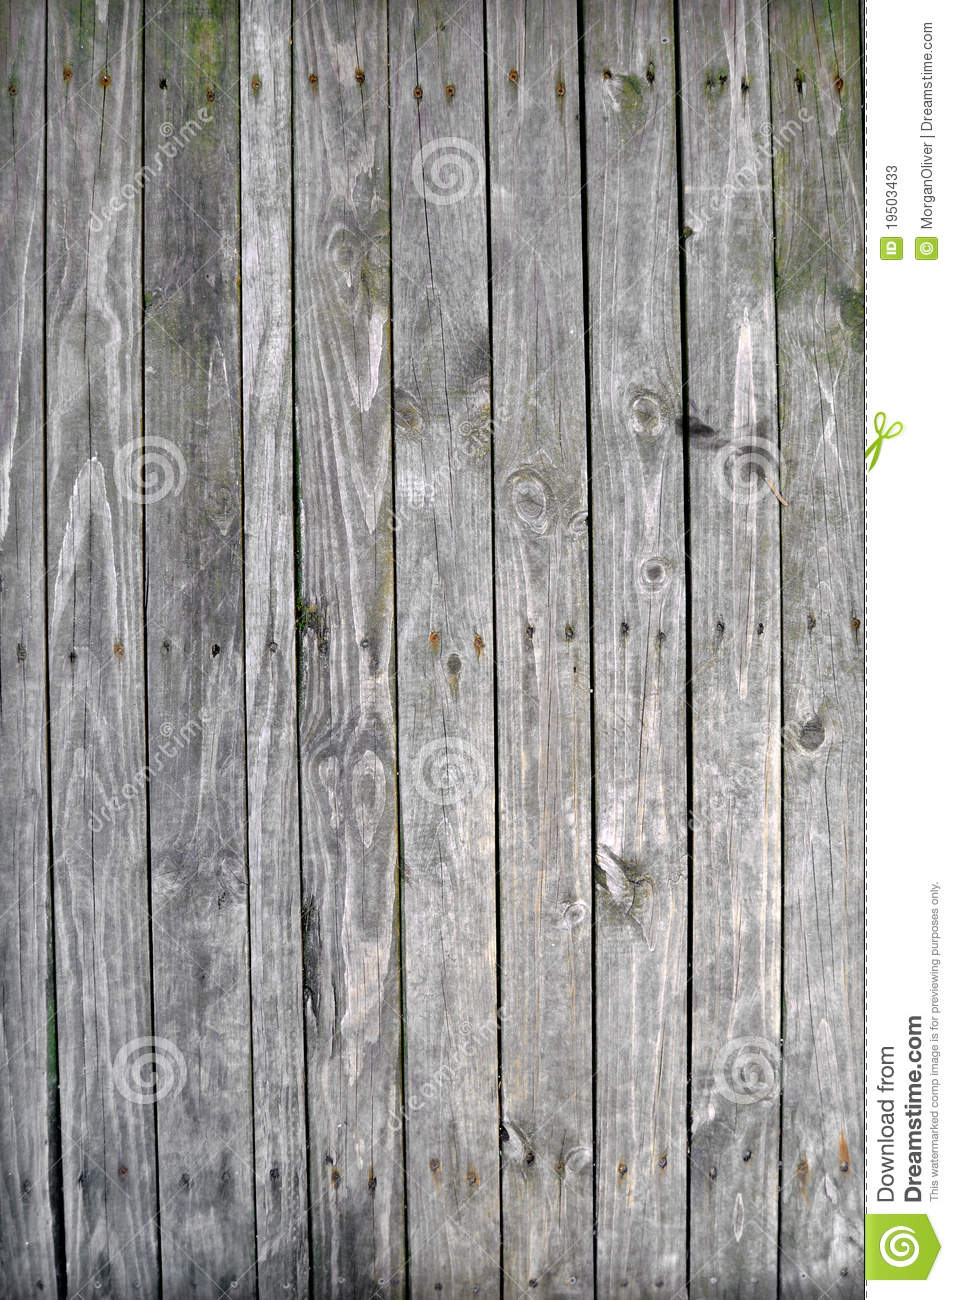 Old Wood Planks stock image. Image of vertical, wooden - 19503433